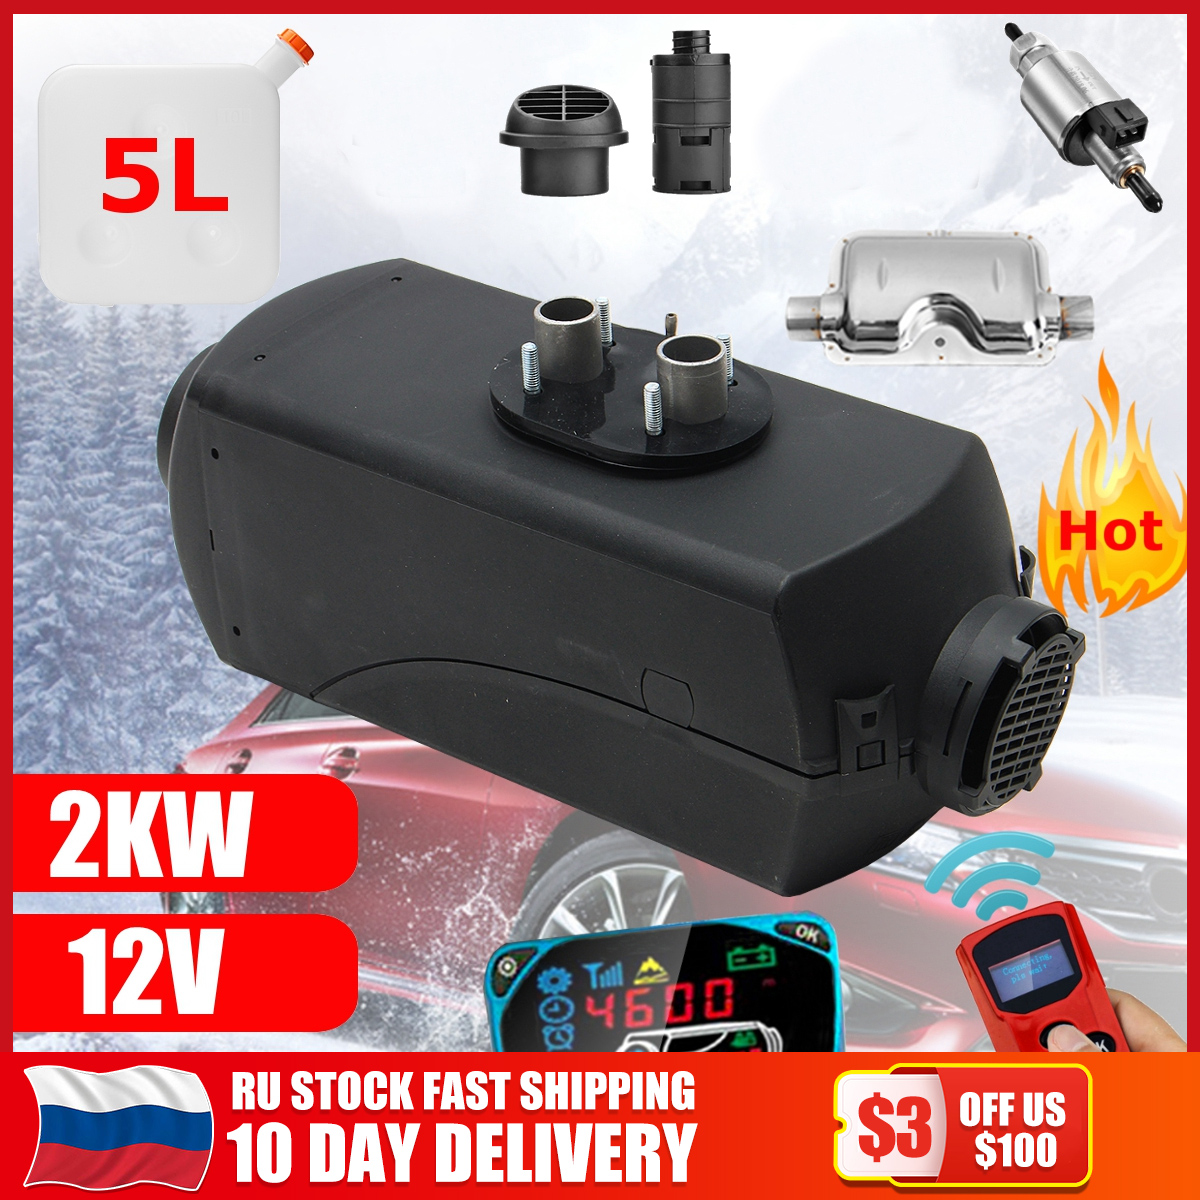 12V 2KW Car Diesels Air Parking Heater Car Heater LCD Remote Control Monitor Switch + Silencer for Trucks Bus Trailer Heater(China)